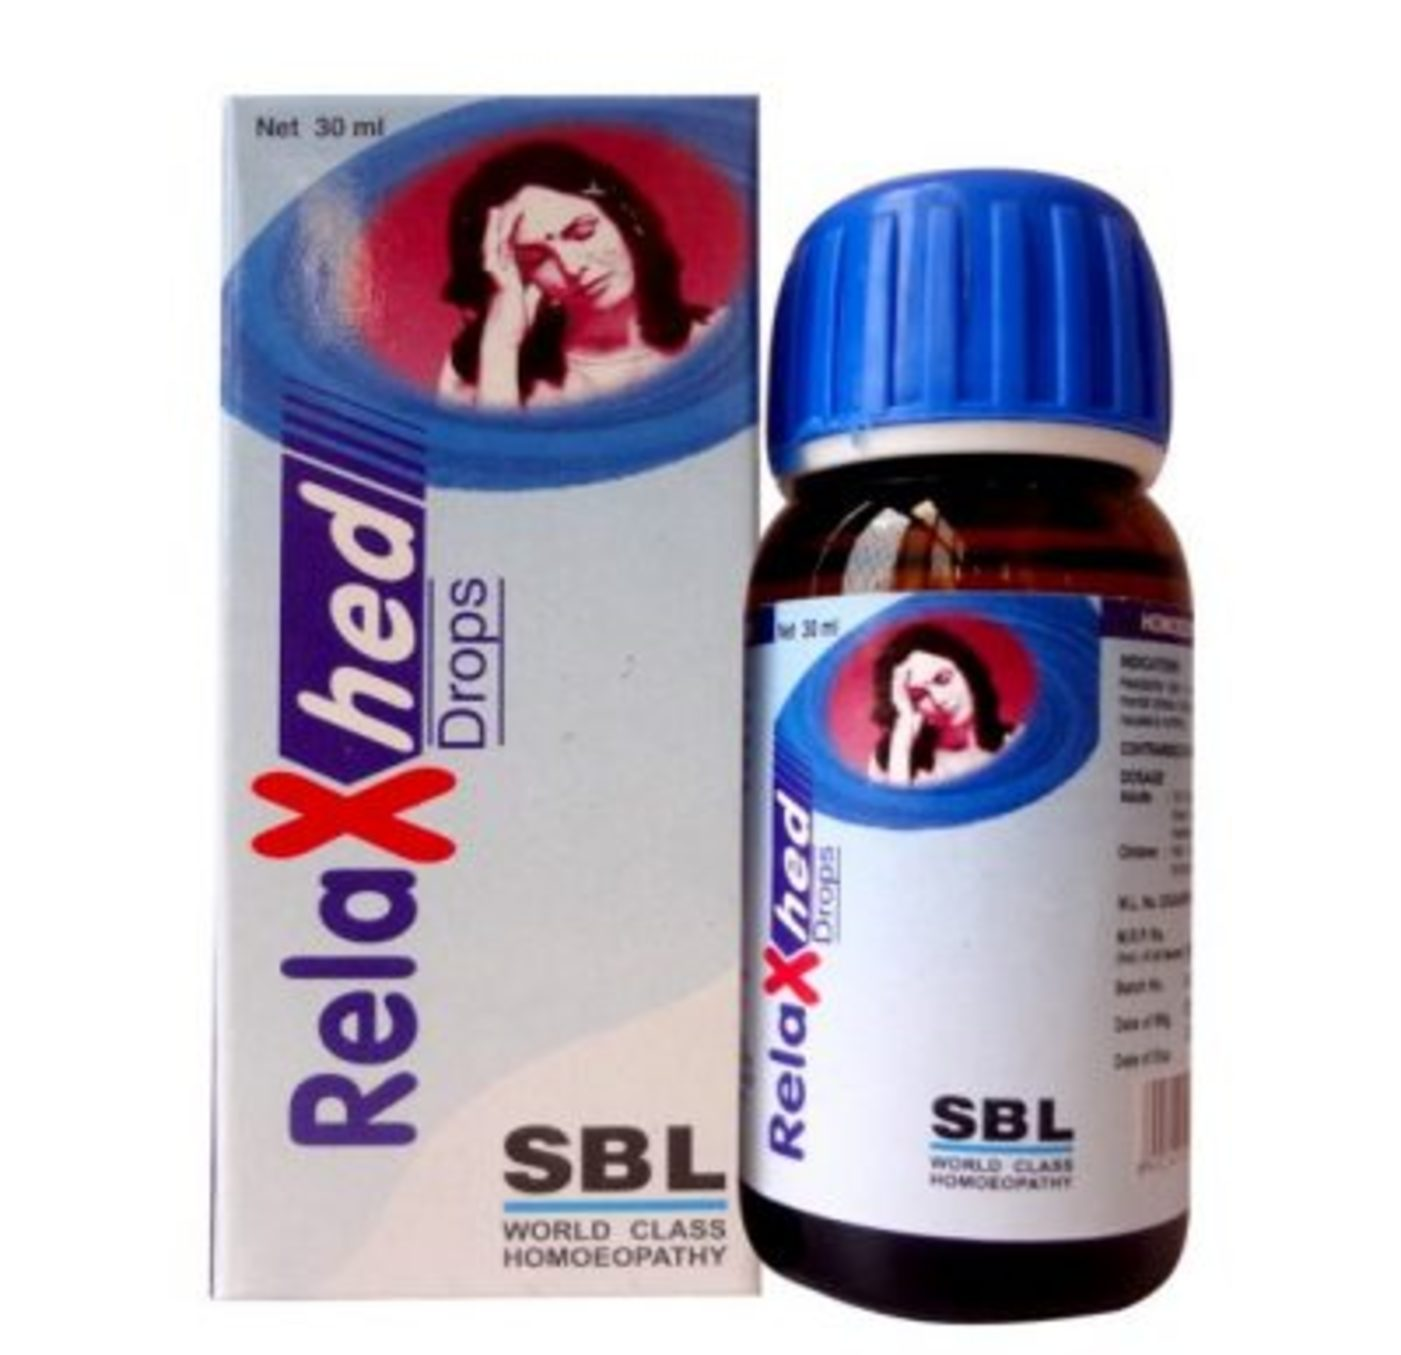 SBL Relaxhed Tablet Homeopathic Medicine style=